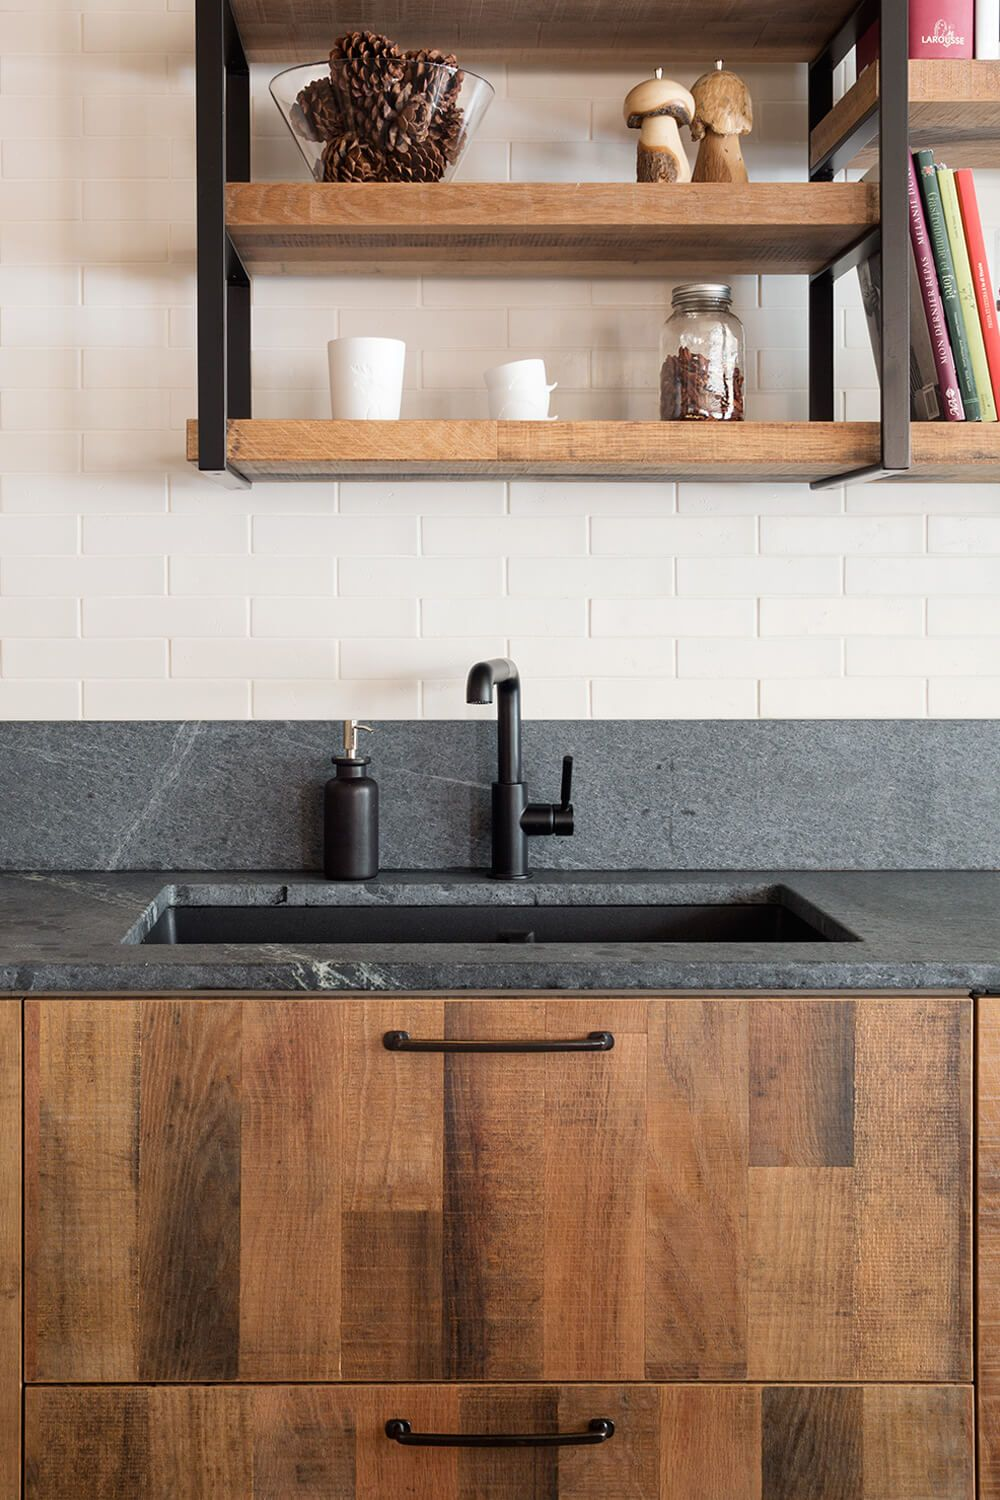 coutertop | Kitchen remodel | Pinterest | Cocinas